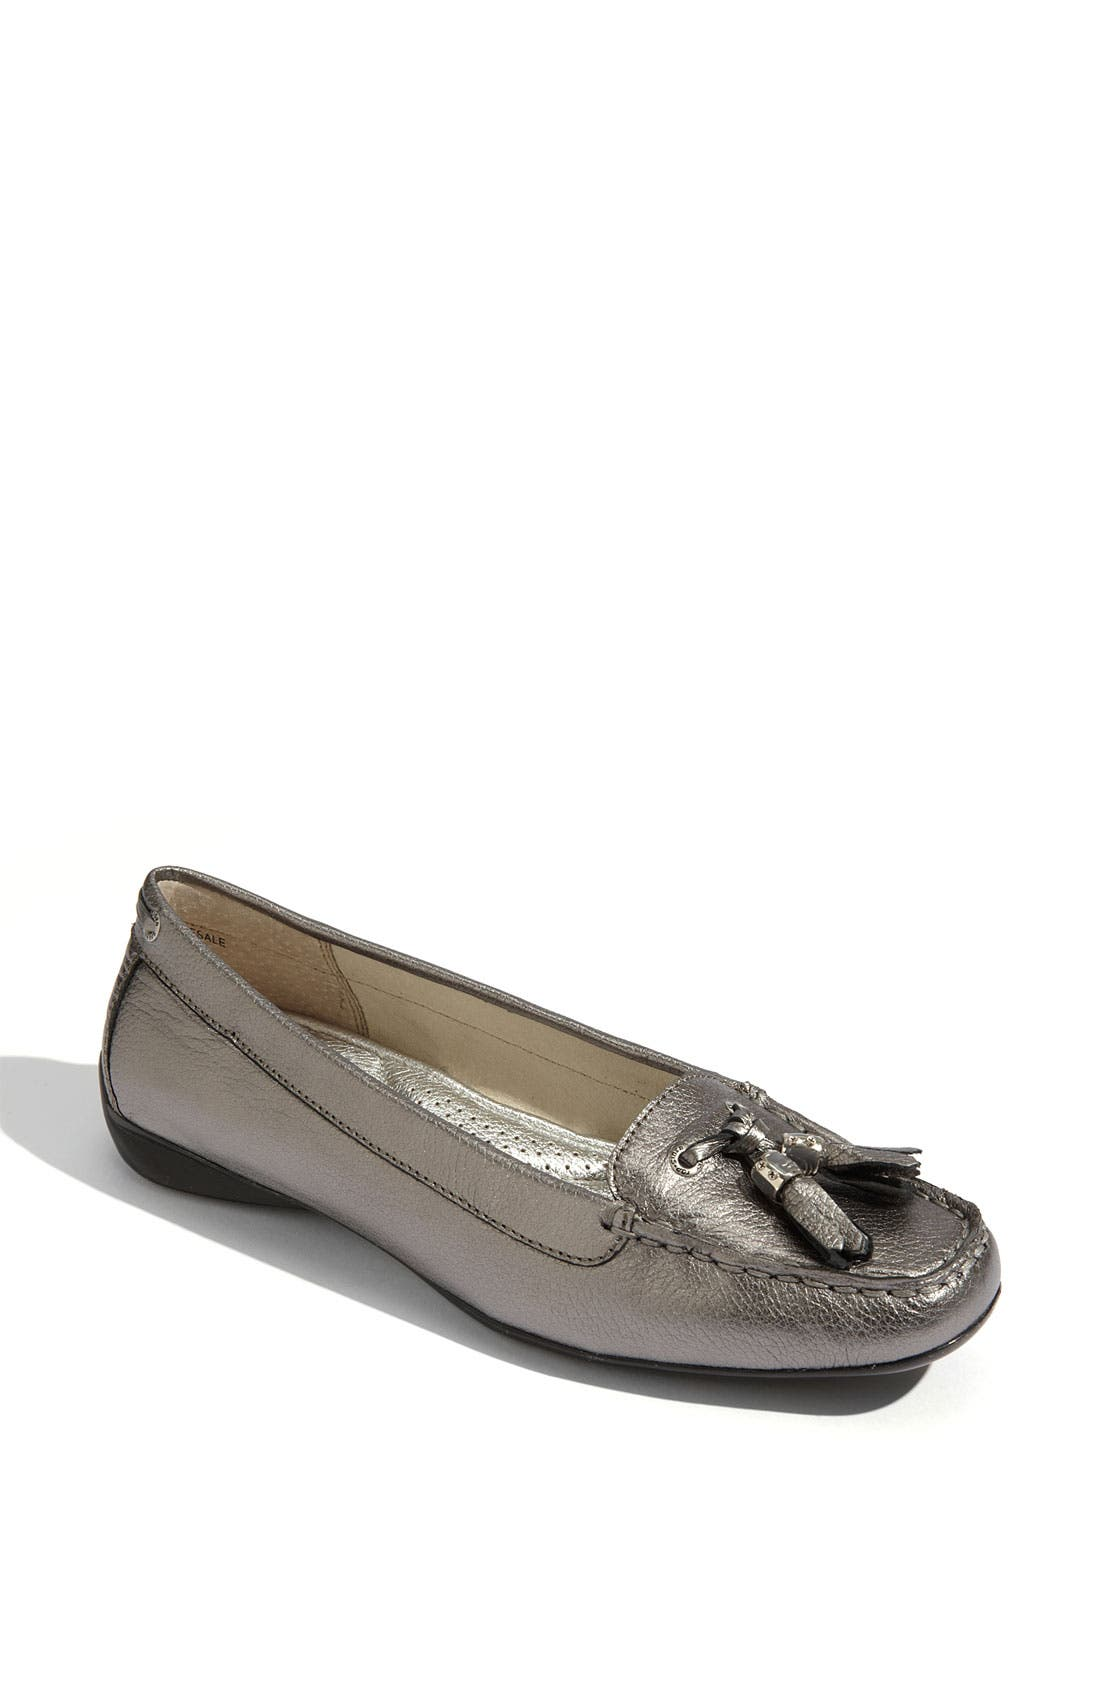 Alternate Image 1 Selected - Sperry Top-Sider® 'Brantpoint' Metallic Loafer